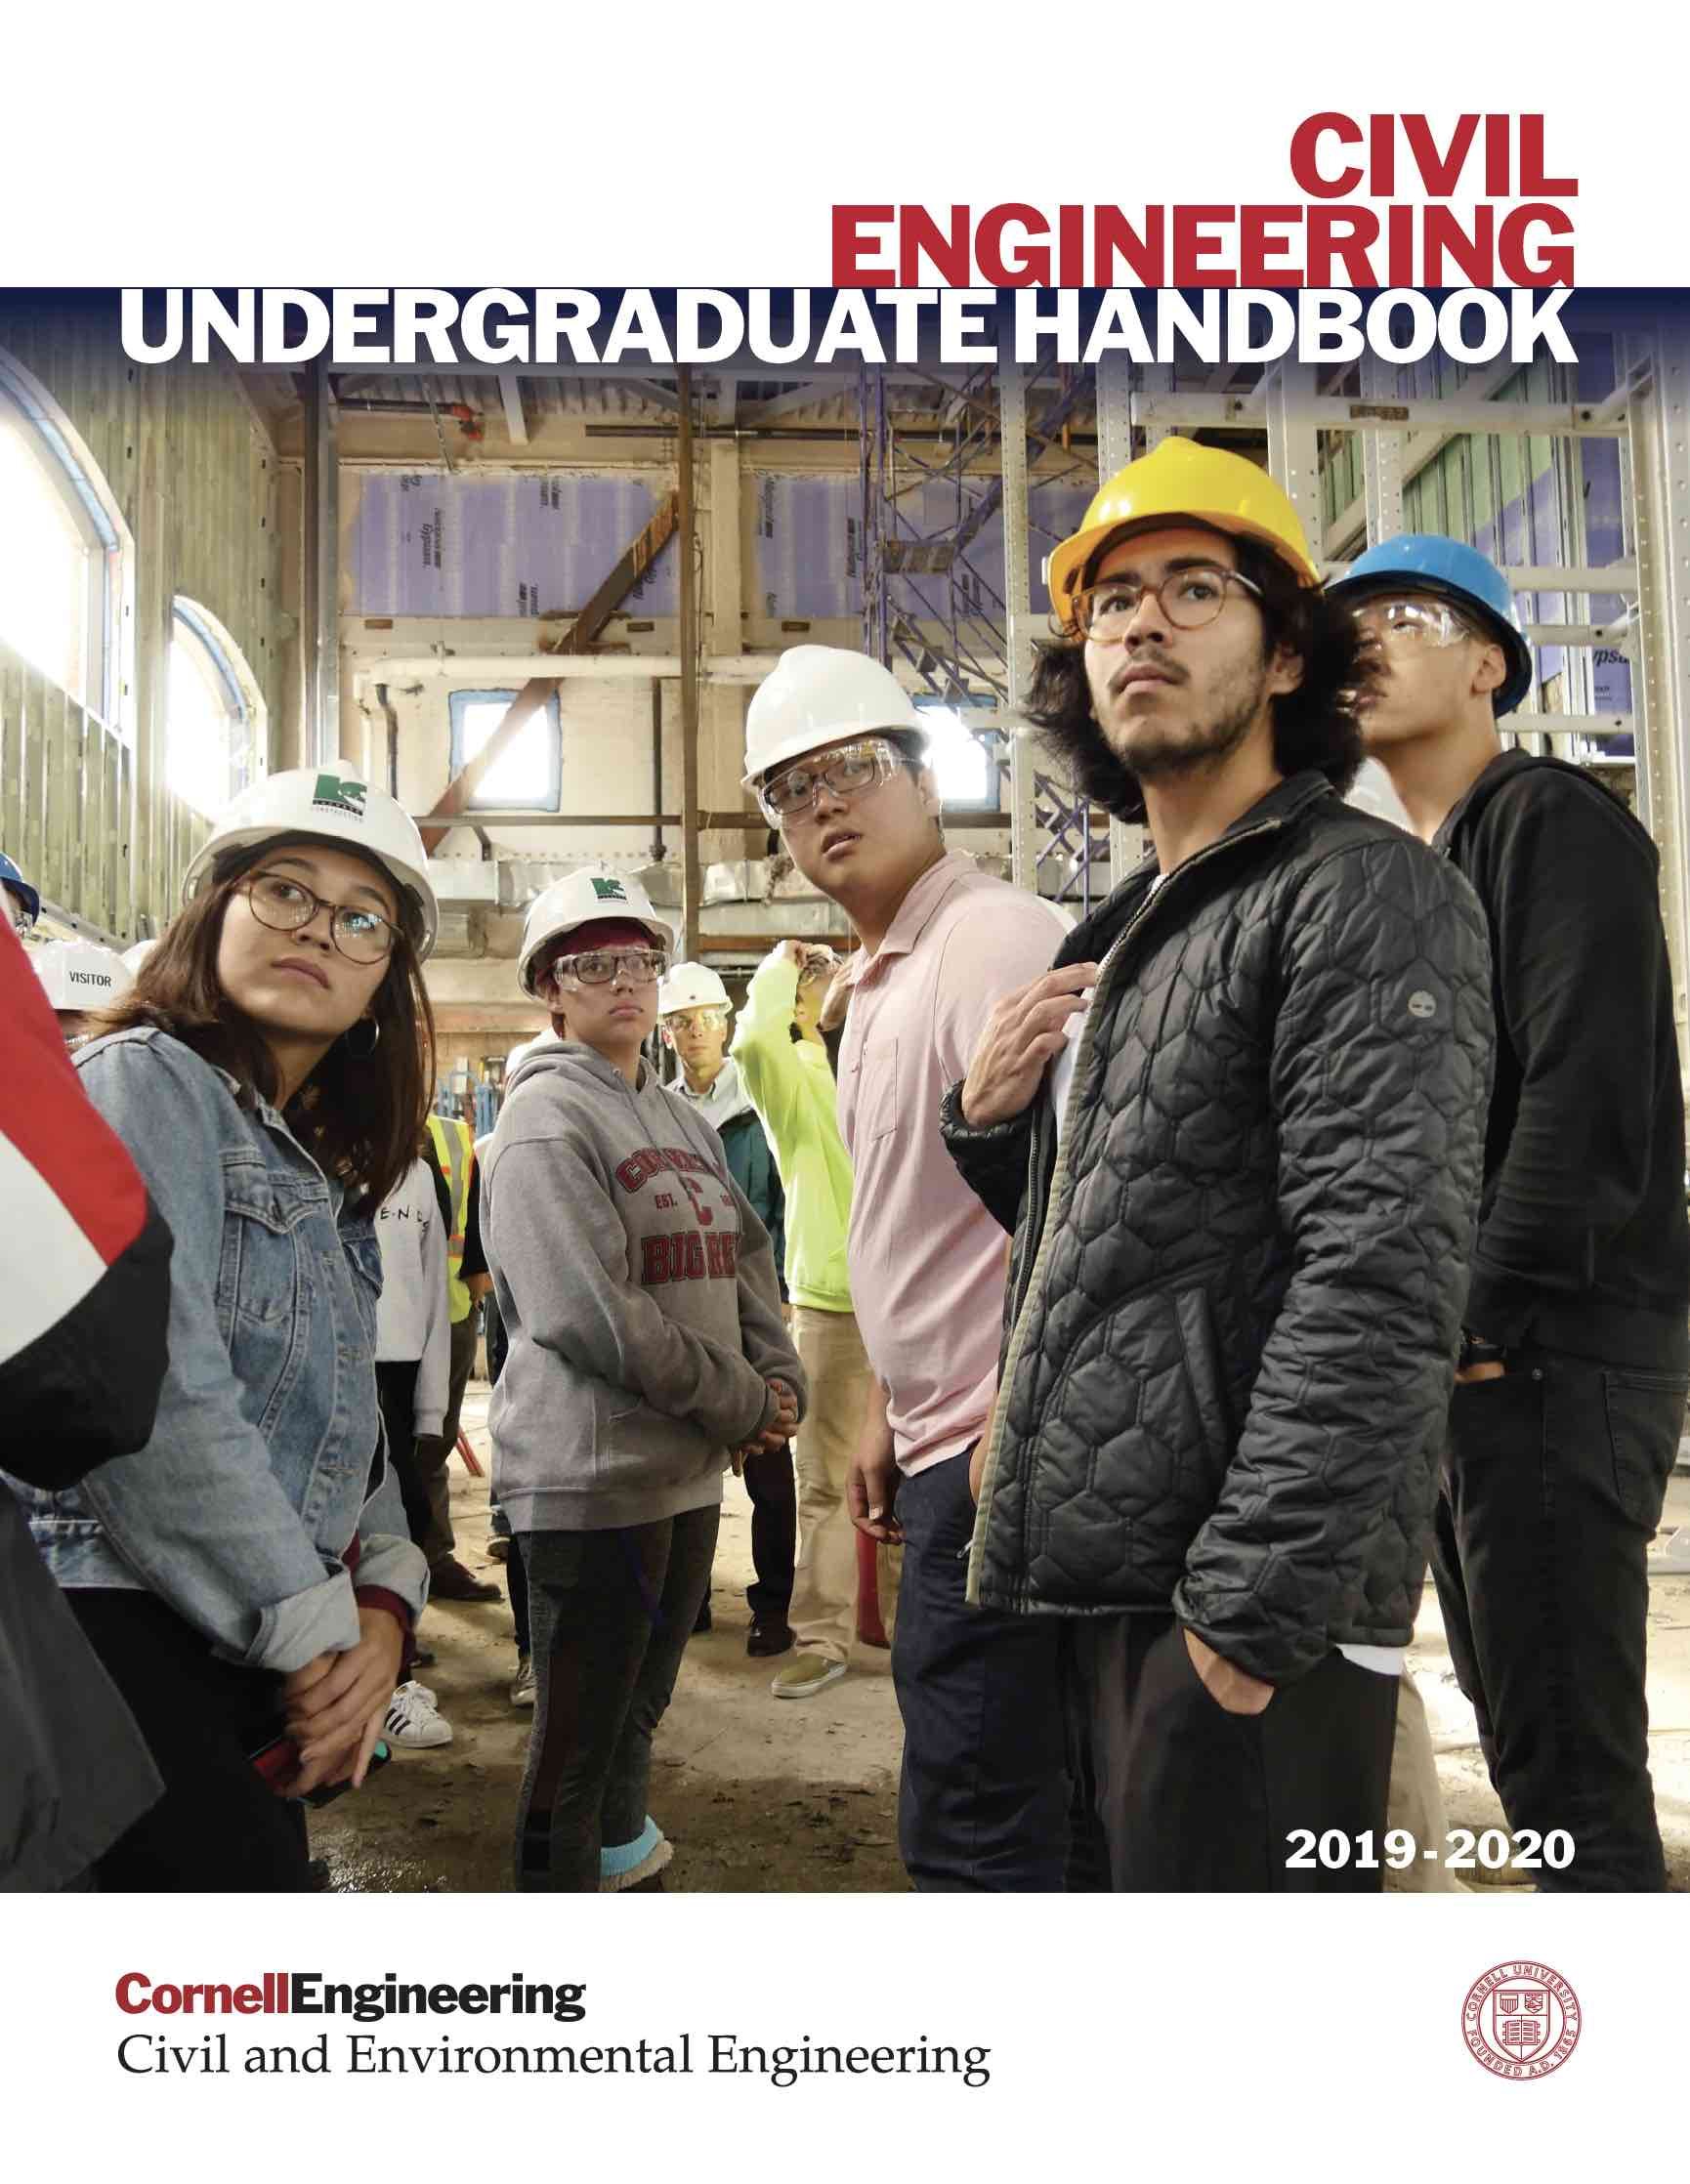 Civil Environmental Engineering Undergraduate Handbook 2019-2020